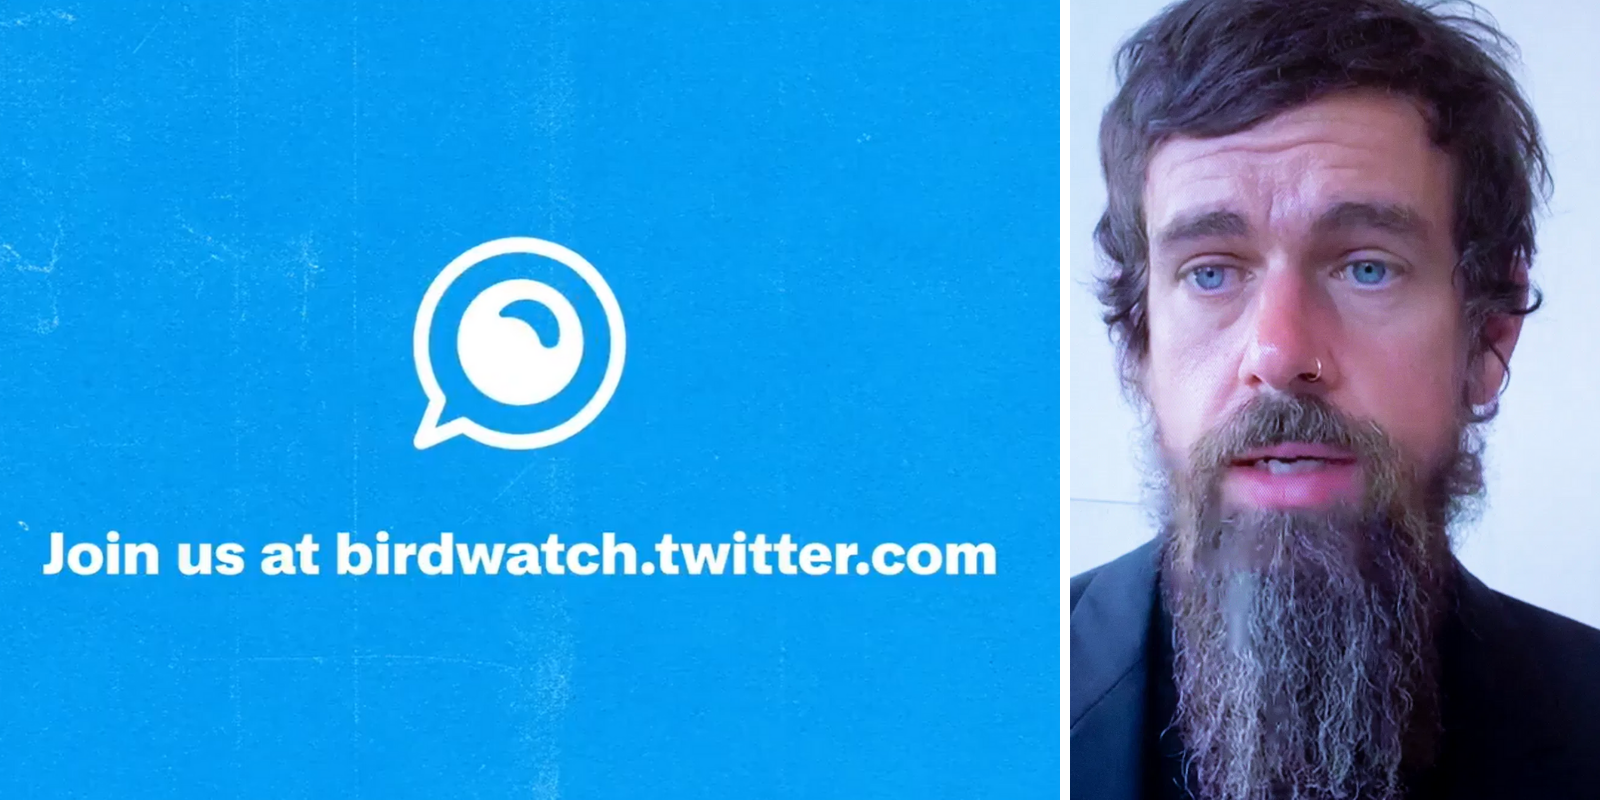 After a string of censorship scandals, Twitter launches 'birdwatch' initiative to combat 'misinformation'